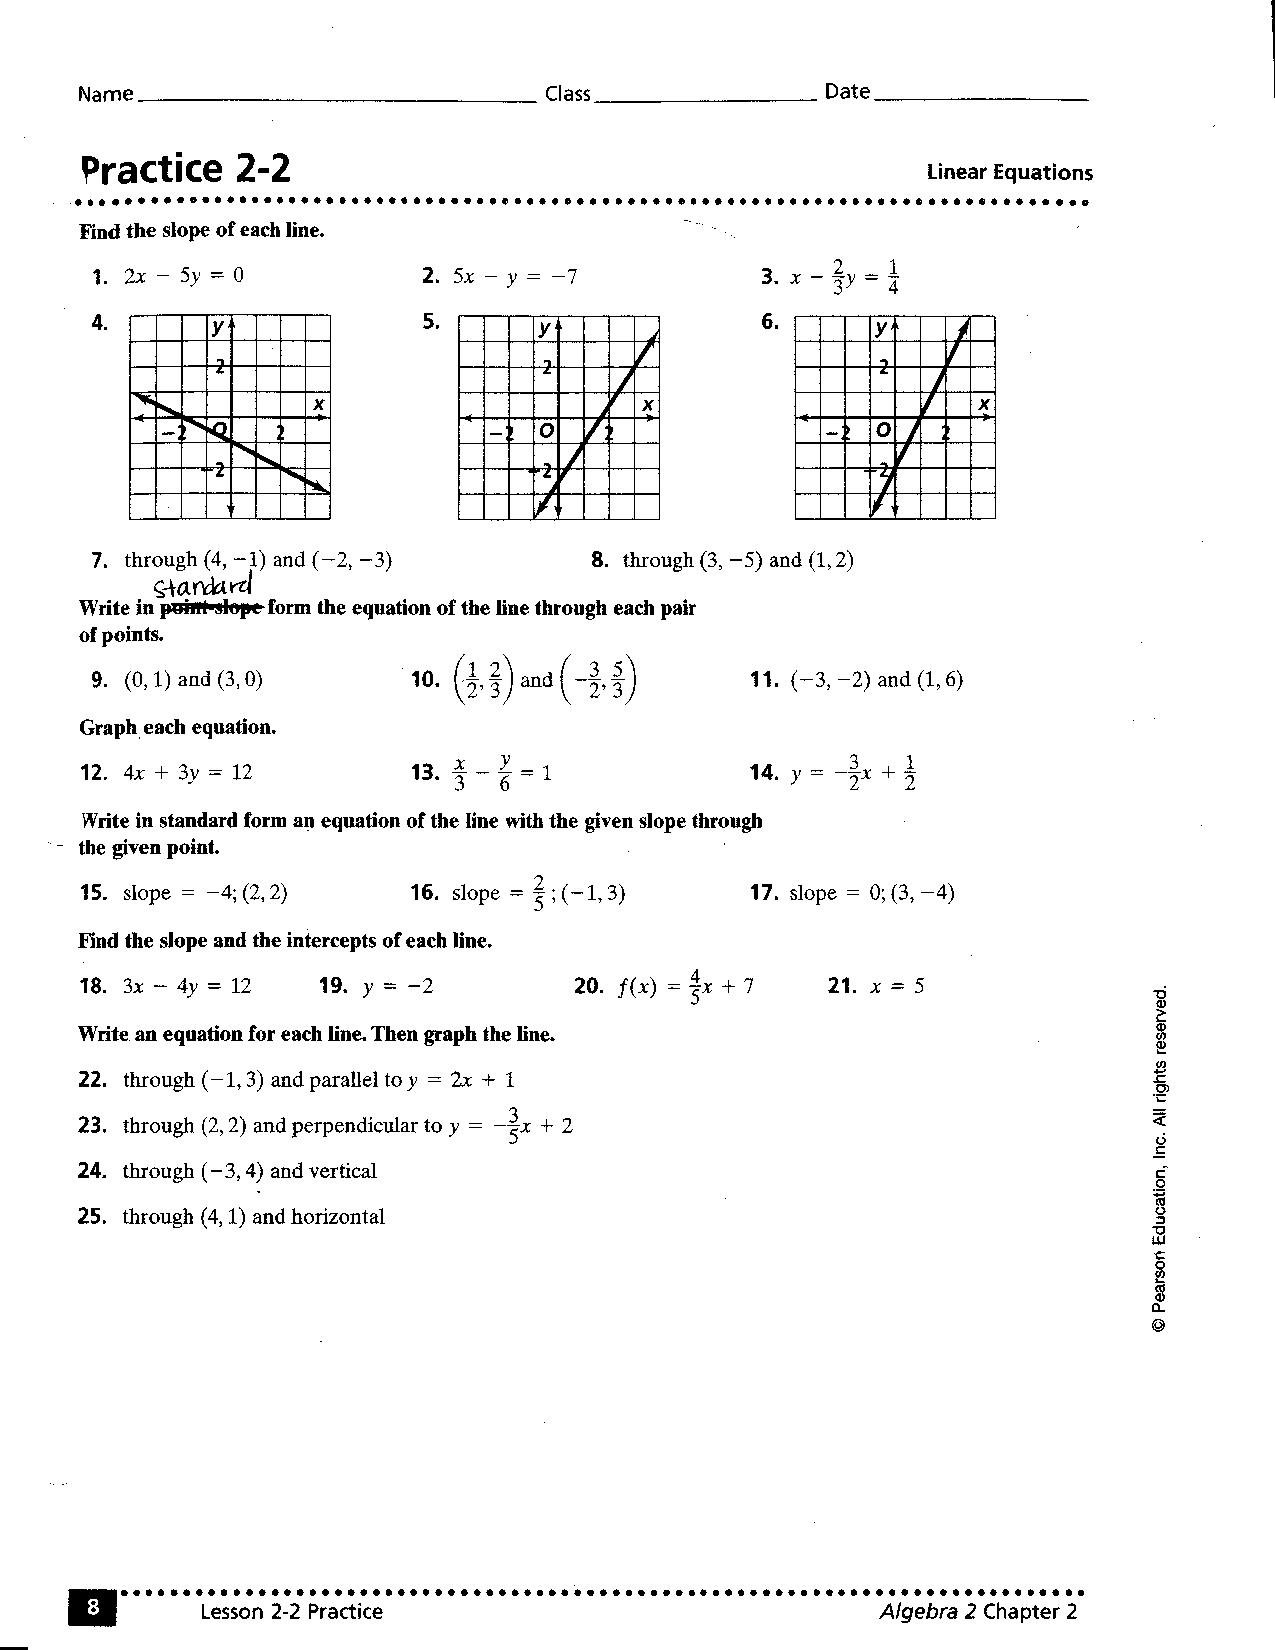 Linear Equation Worksheets With Answers The Best Worksheets Image